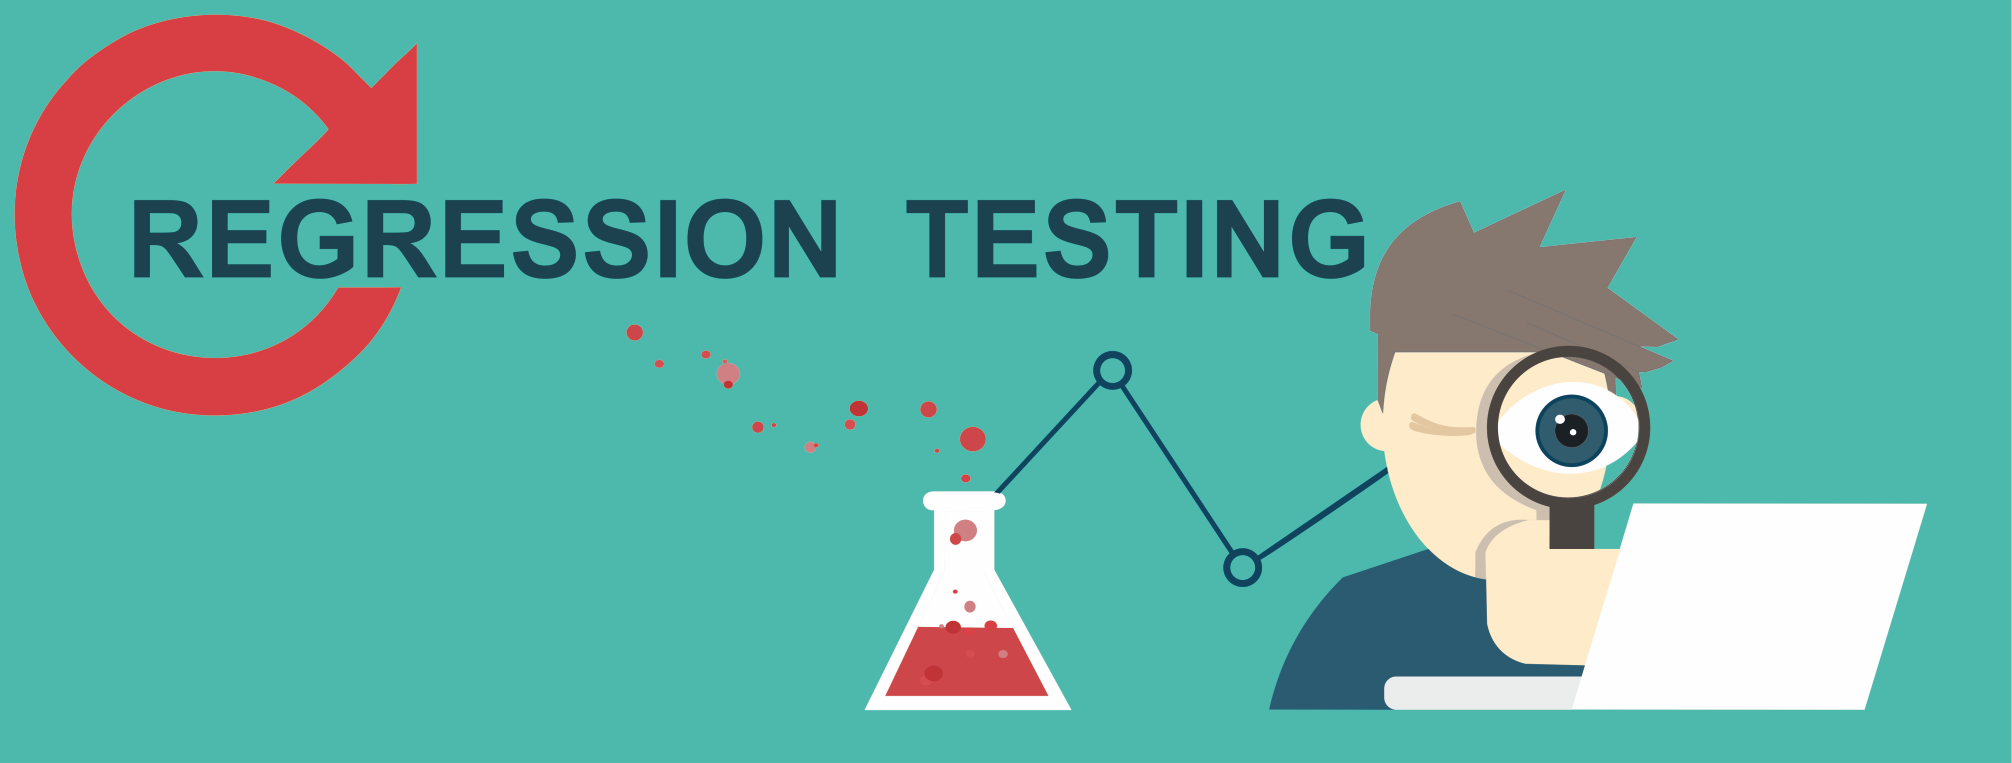 How to Automate Regression Testing?